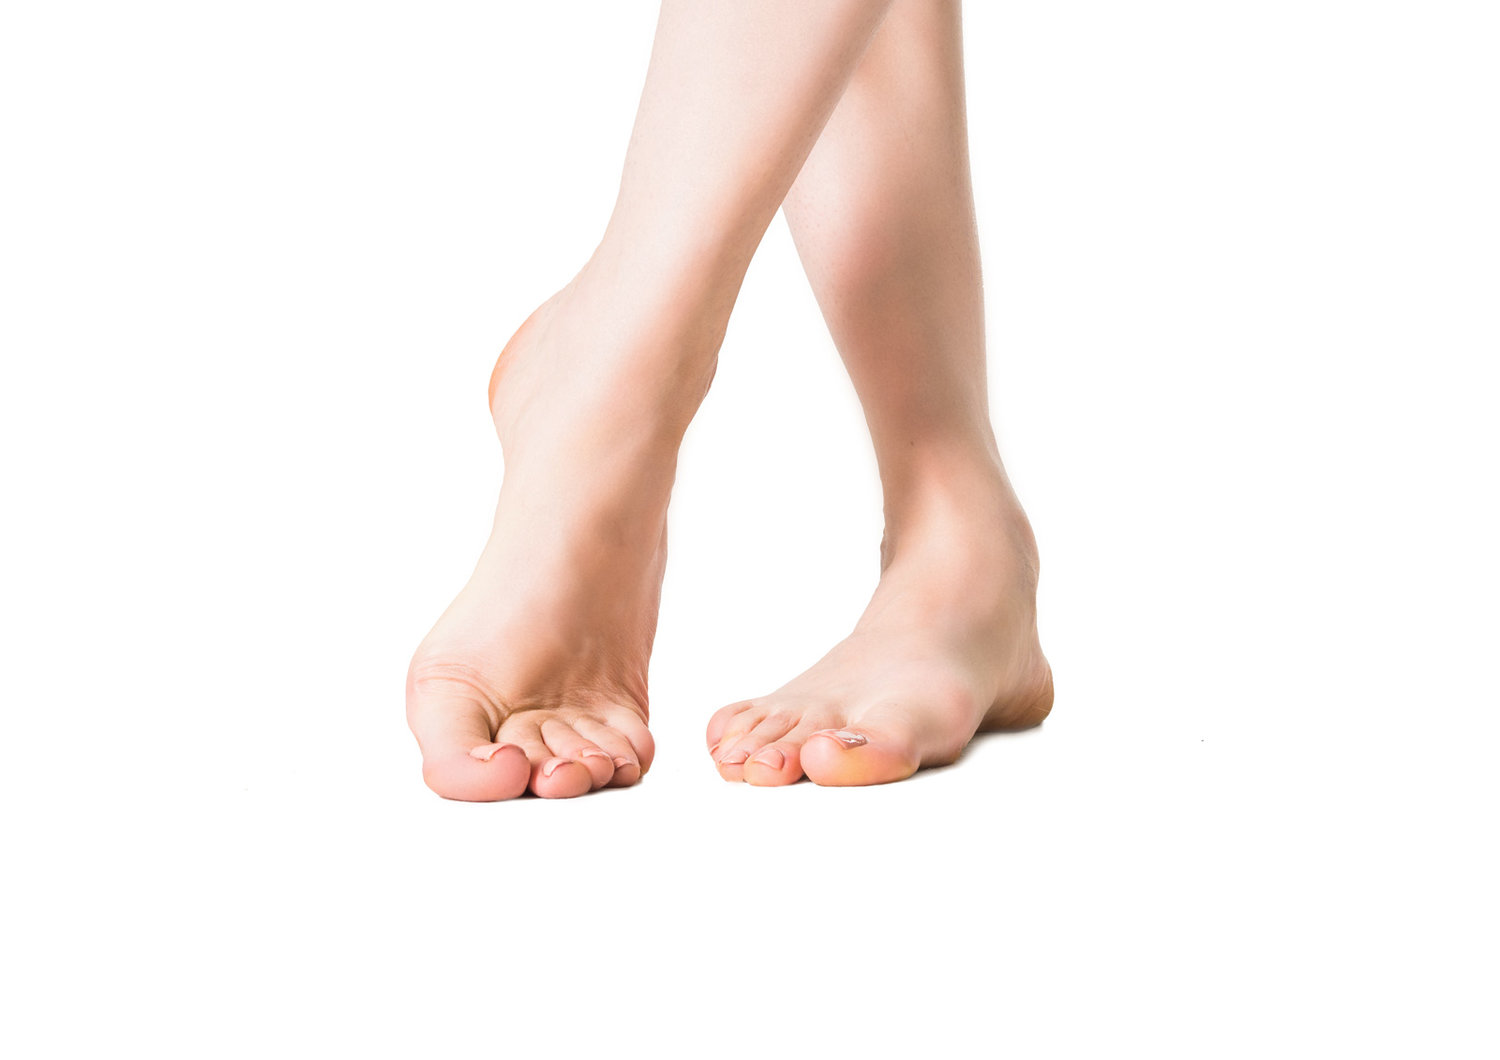 Patient Forms Affiliated Foot Ankle